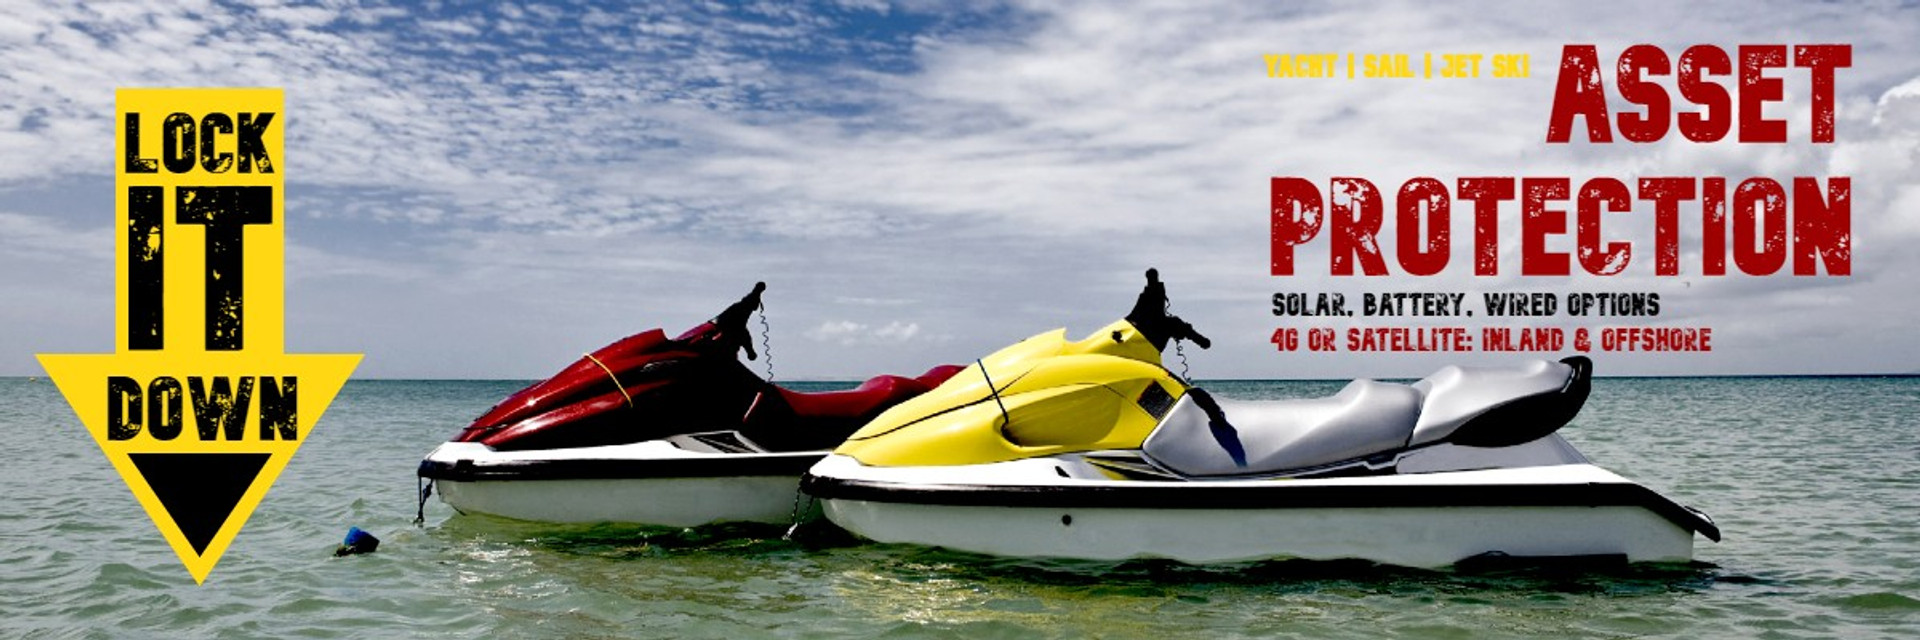 marine and boating: asset protection, theft recovery